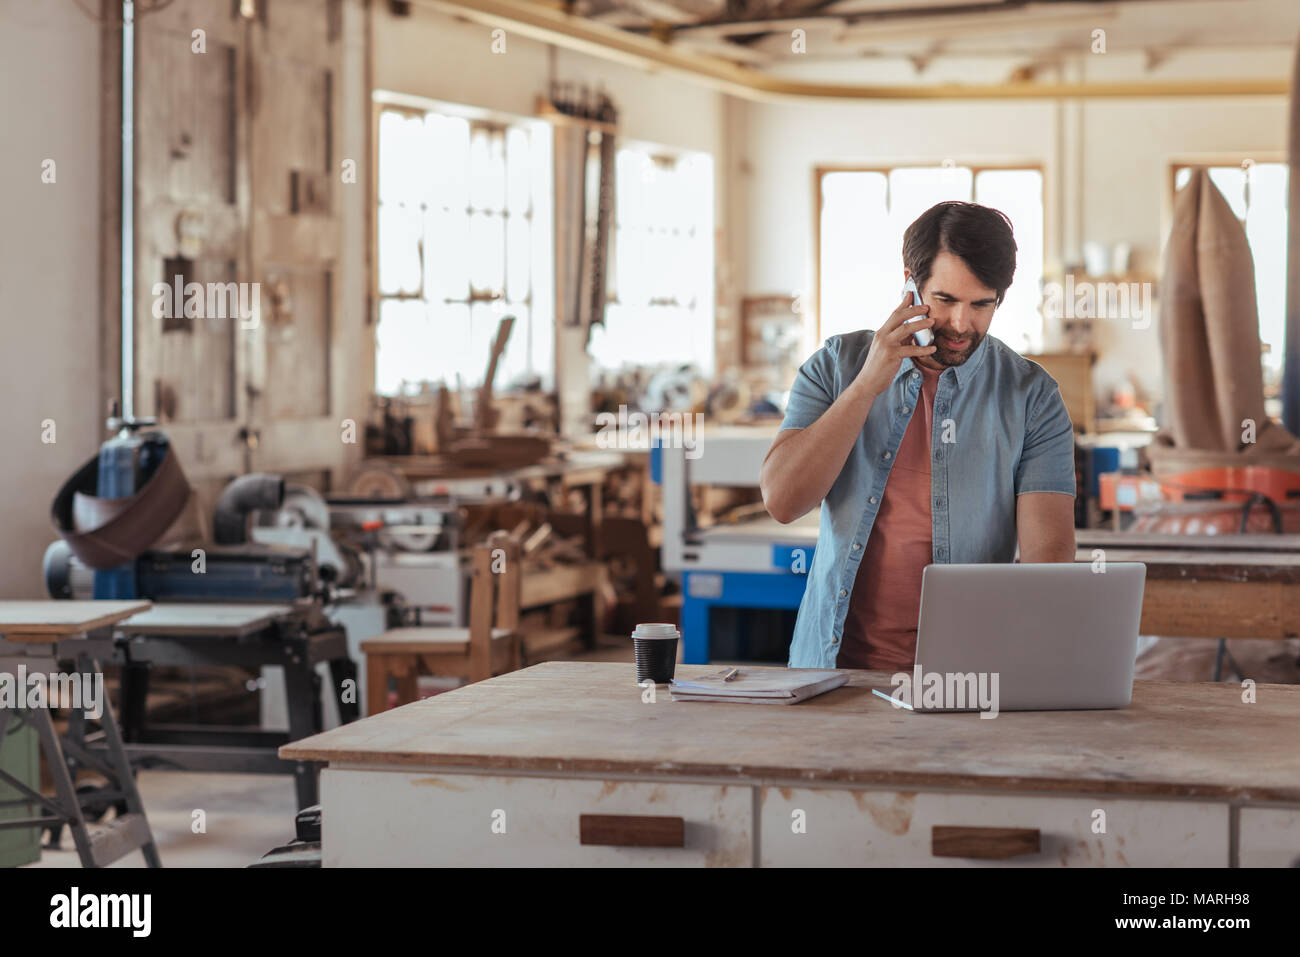 Woodworker using a phone and laptop in his large workshop - Stock Image